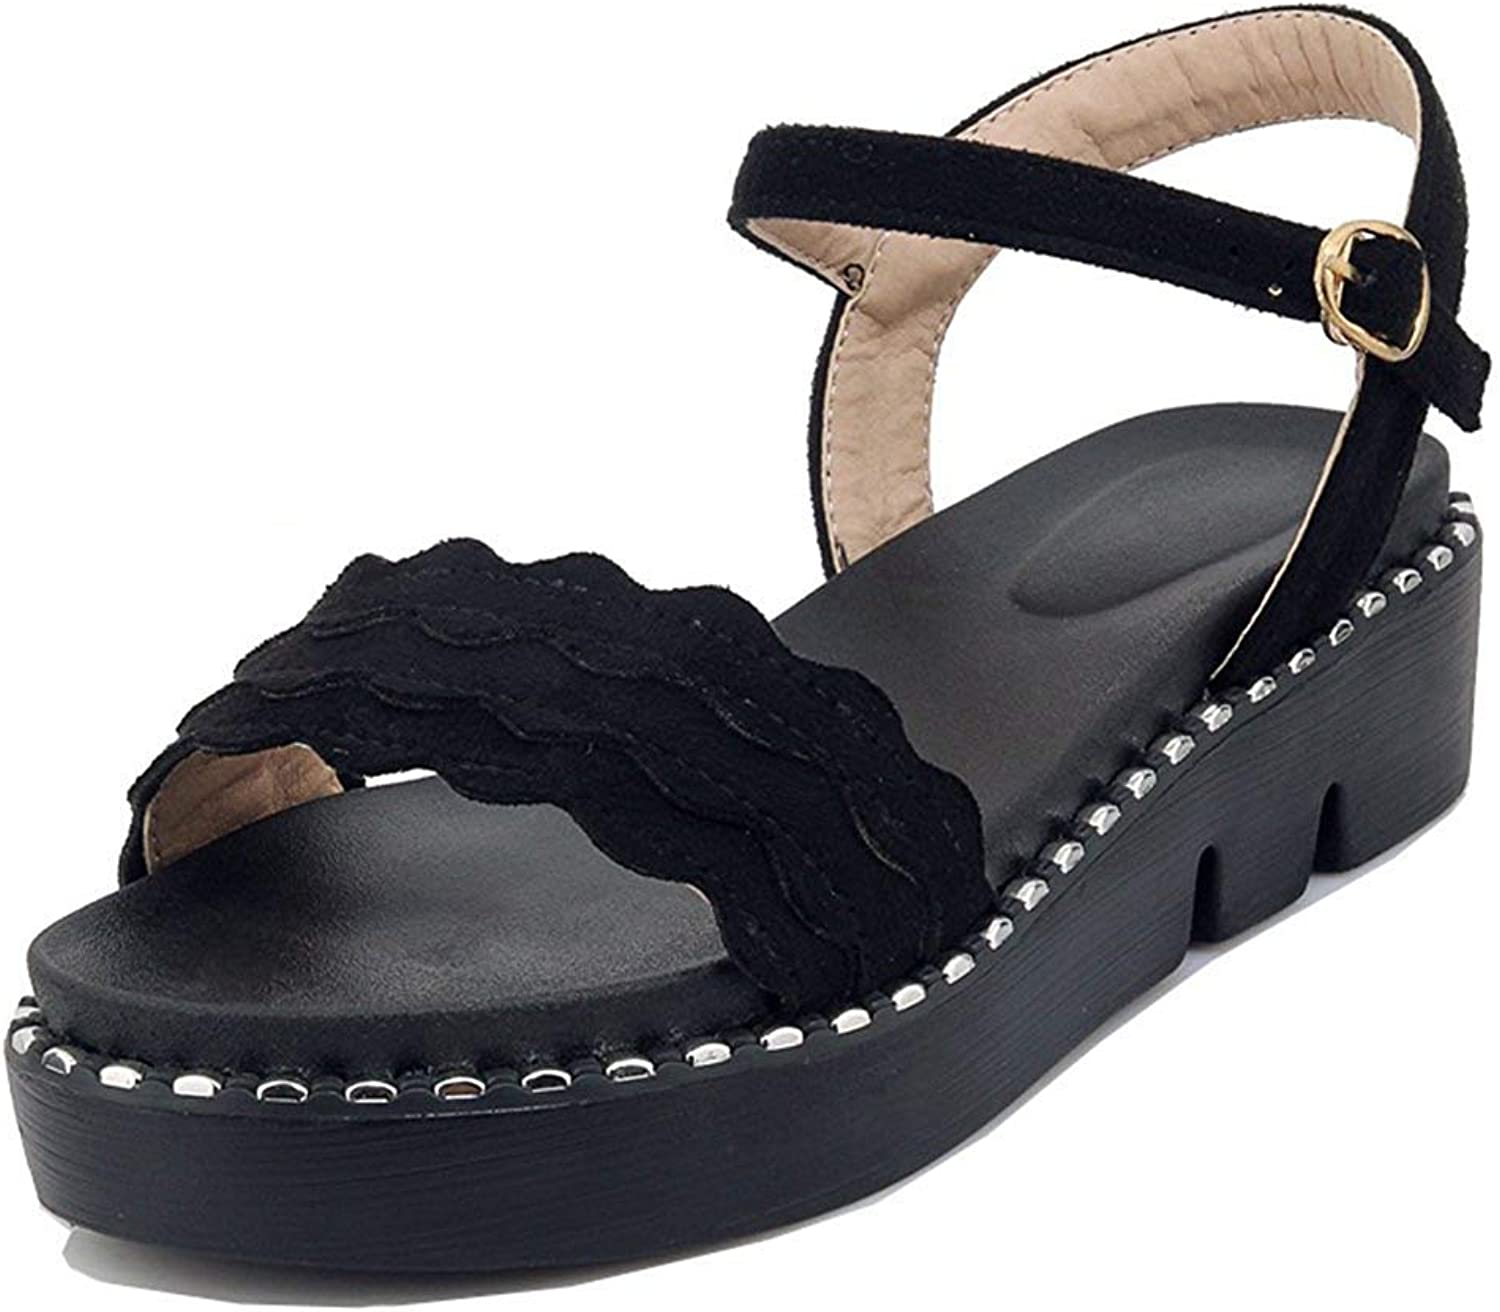 Unm Women's Platform Flat Sandals with Ankle Strap - Comfort Thick Sole - Open Toe Buckled